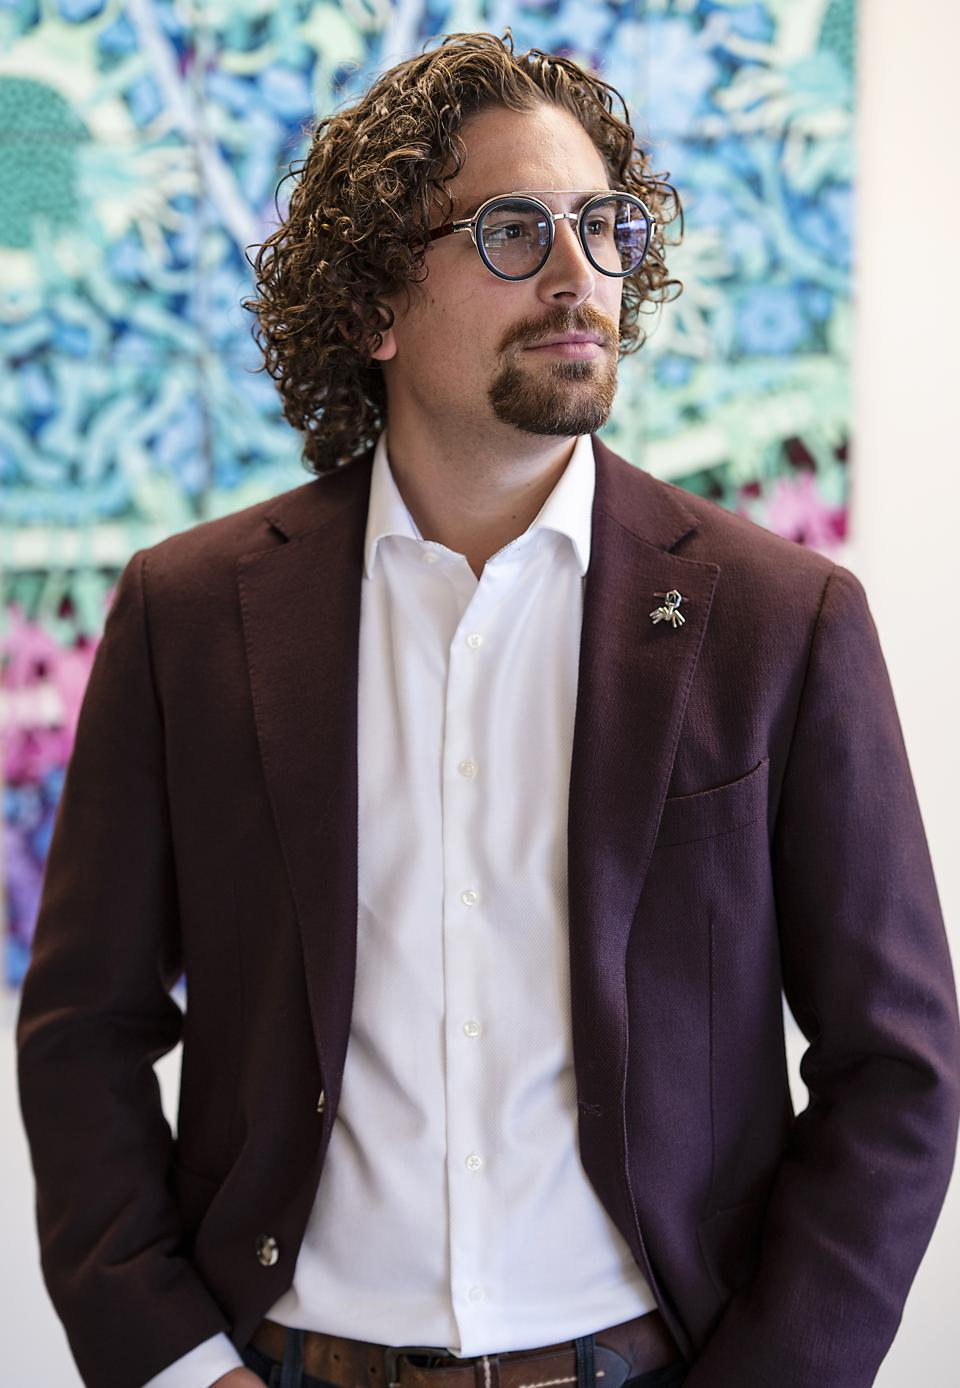 A white man with curly brown hair, glasses and a plum colored suit jacket looking off camera right